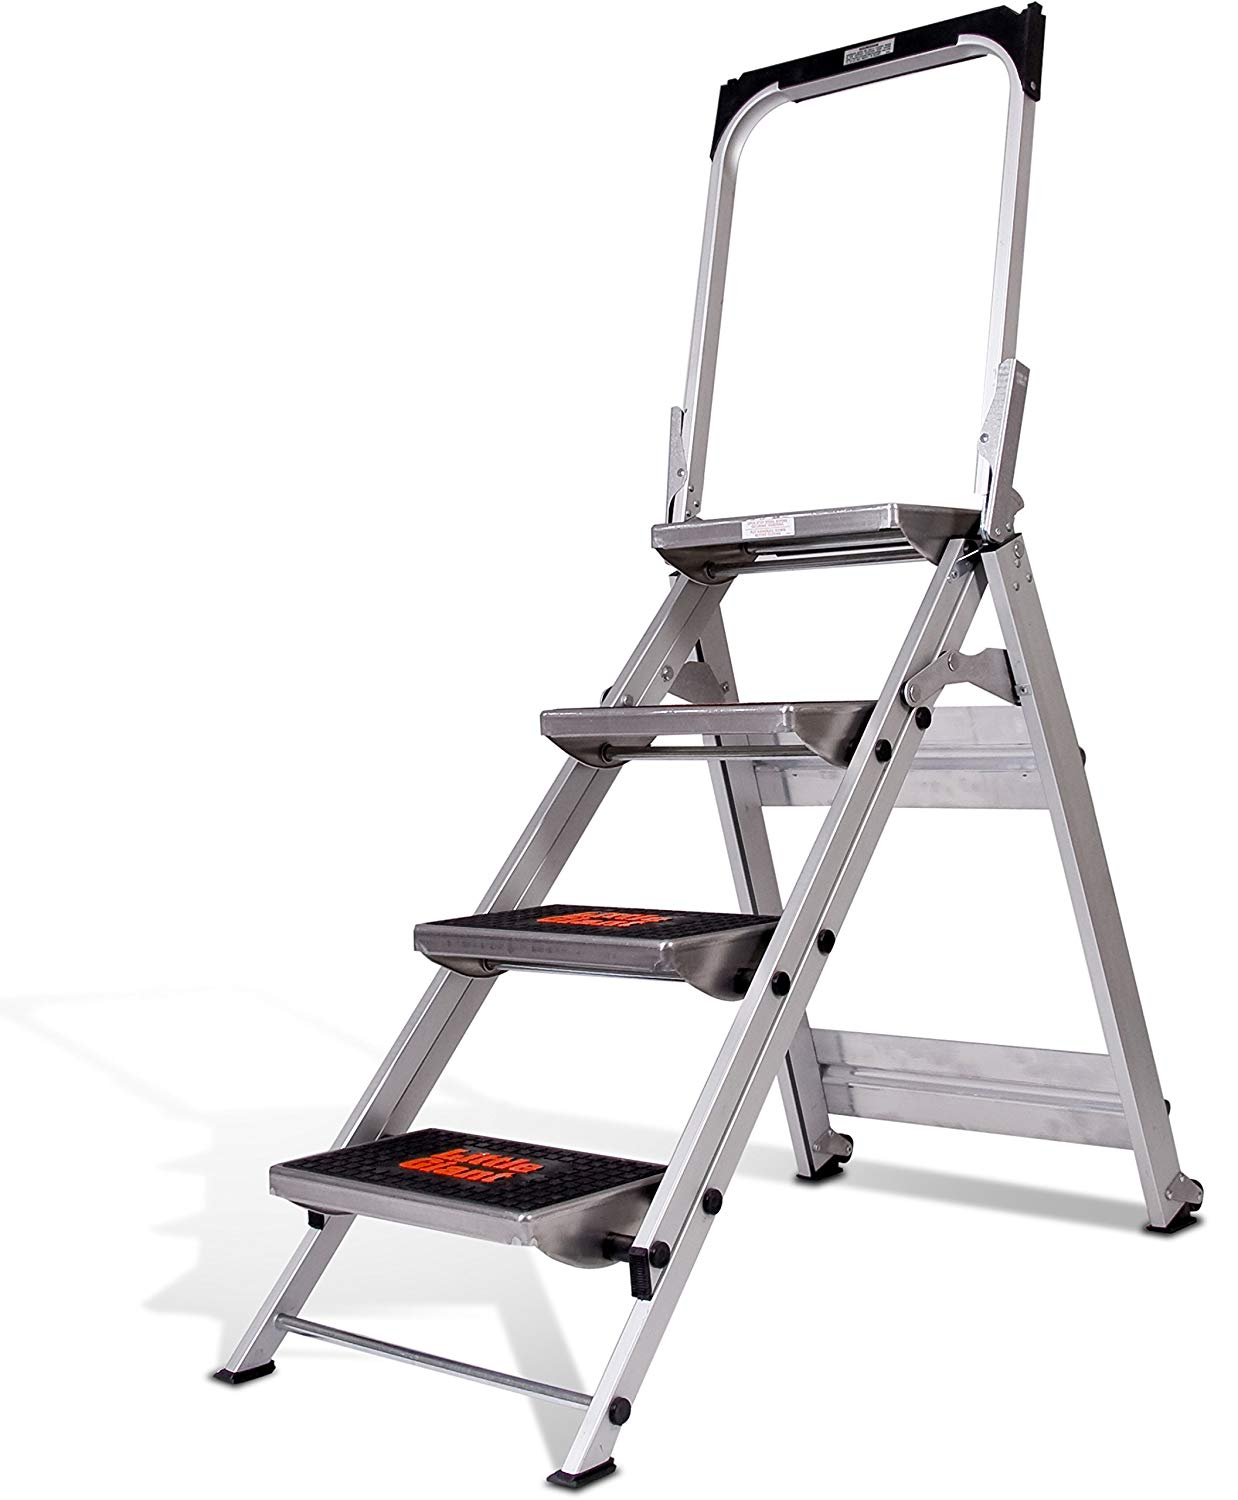 Top 5 Best Multi Use Ladders in 2020 – Buyers' Guide